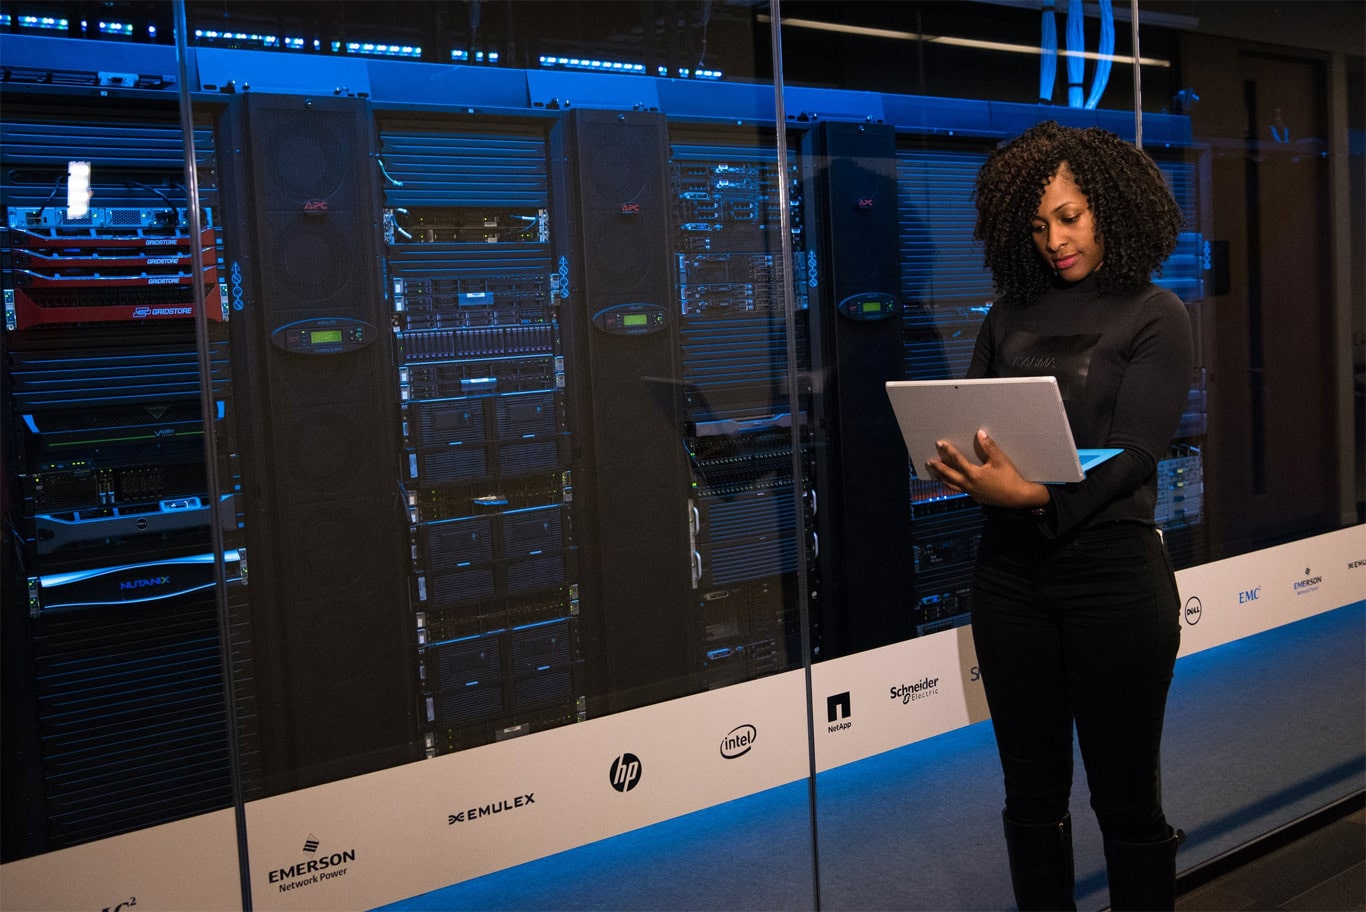 A woman holding a laptop inside a server room